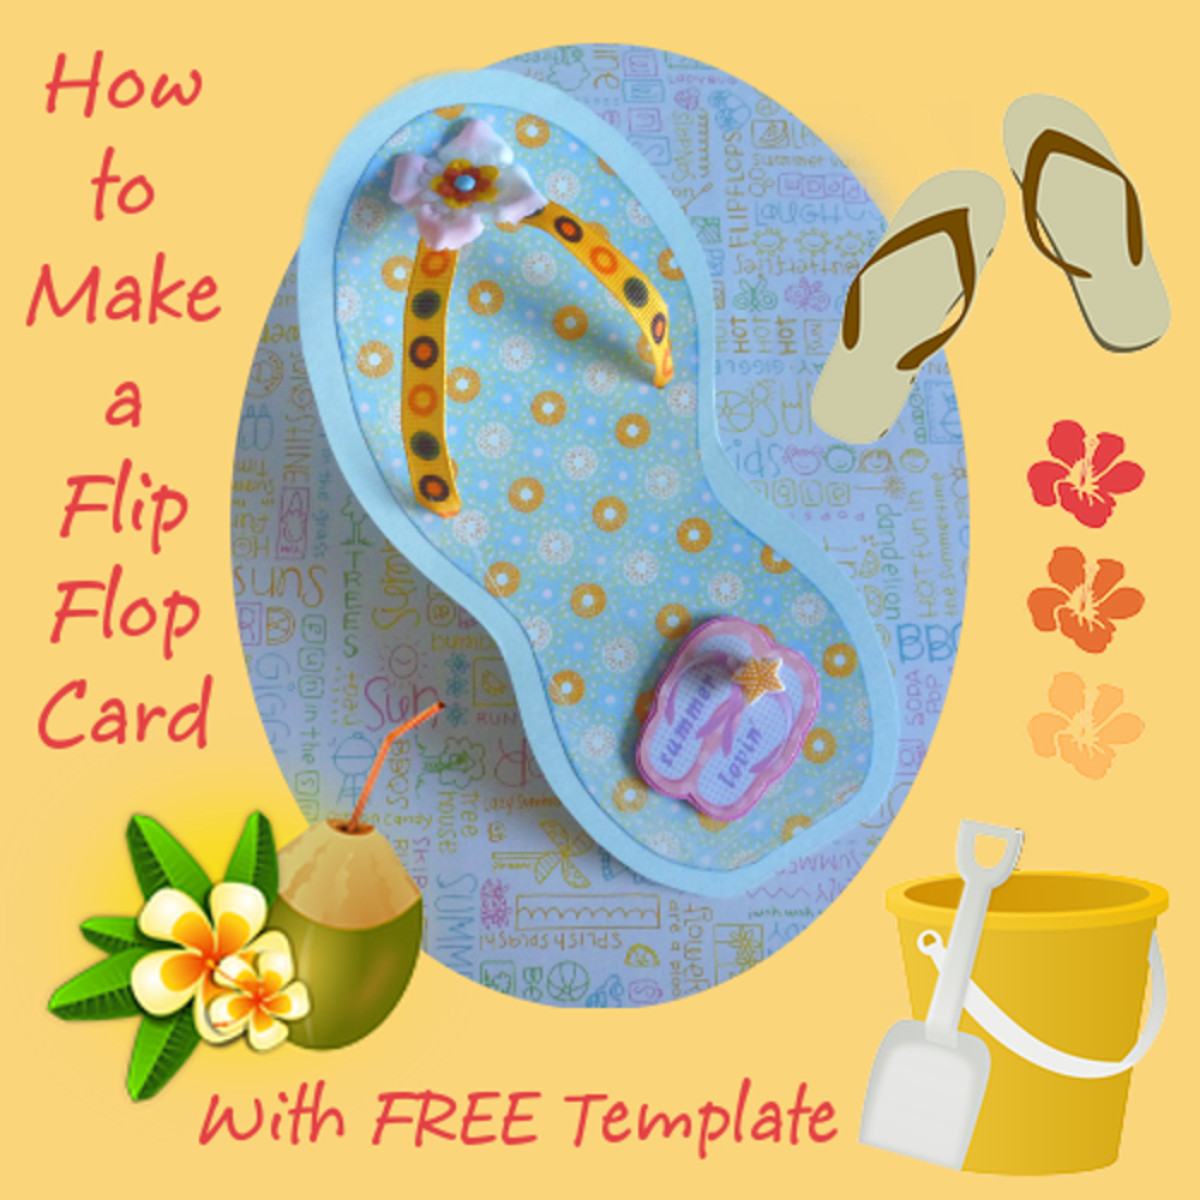 79392783a9c7 How to make a flip flop card with a free printable template to use. Summer